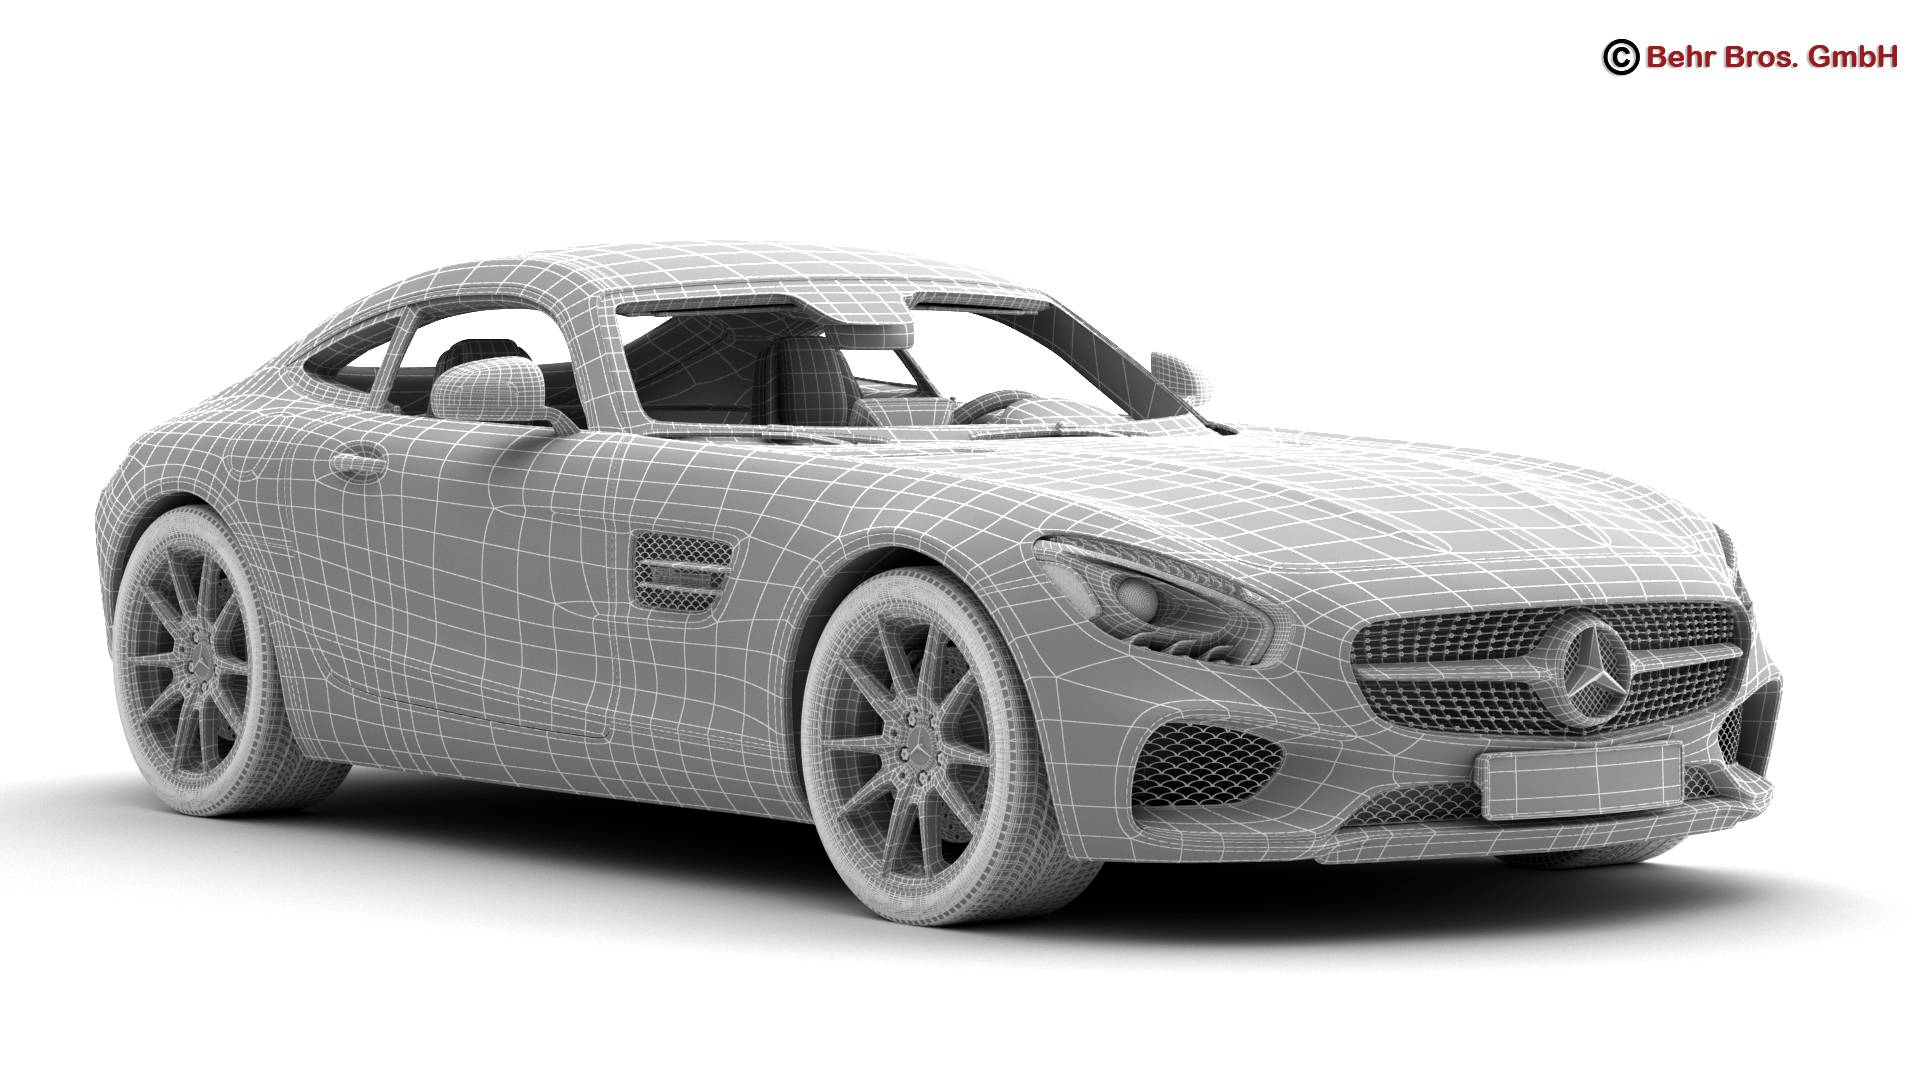 mercedes amg gt 2015 eu and us version 3d model 3ds max fbx c4d lwo ma mb obj 210128